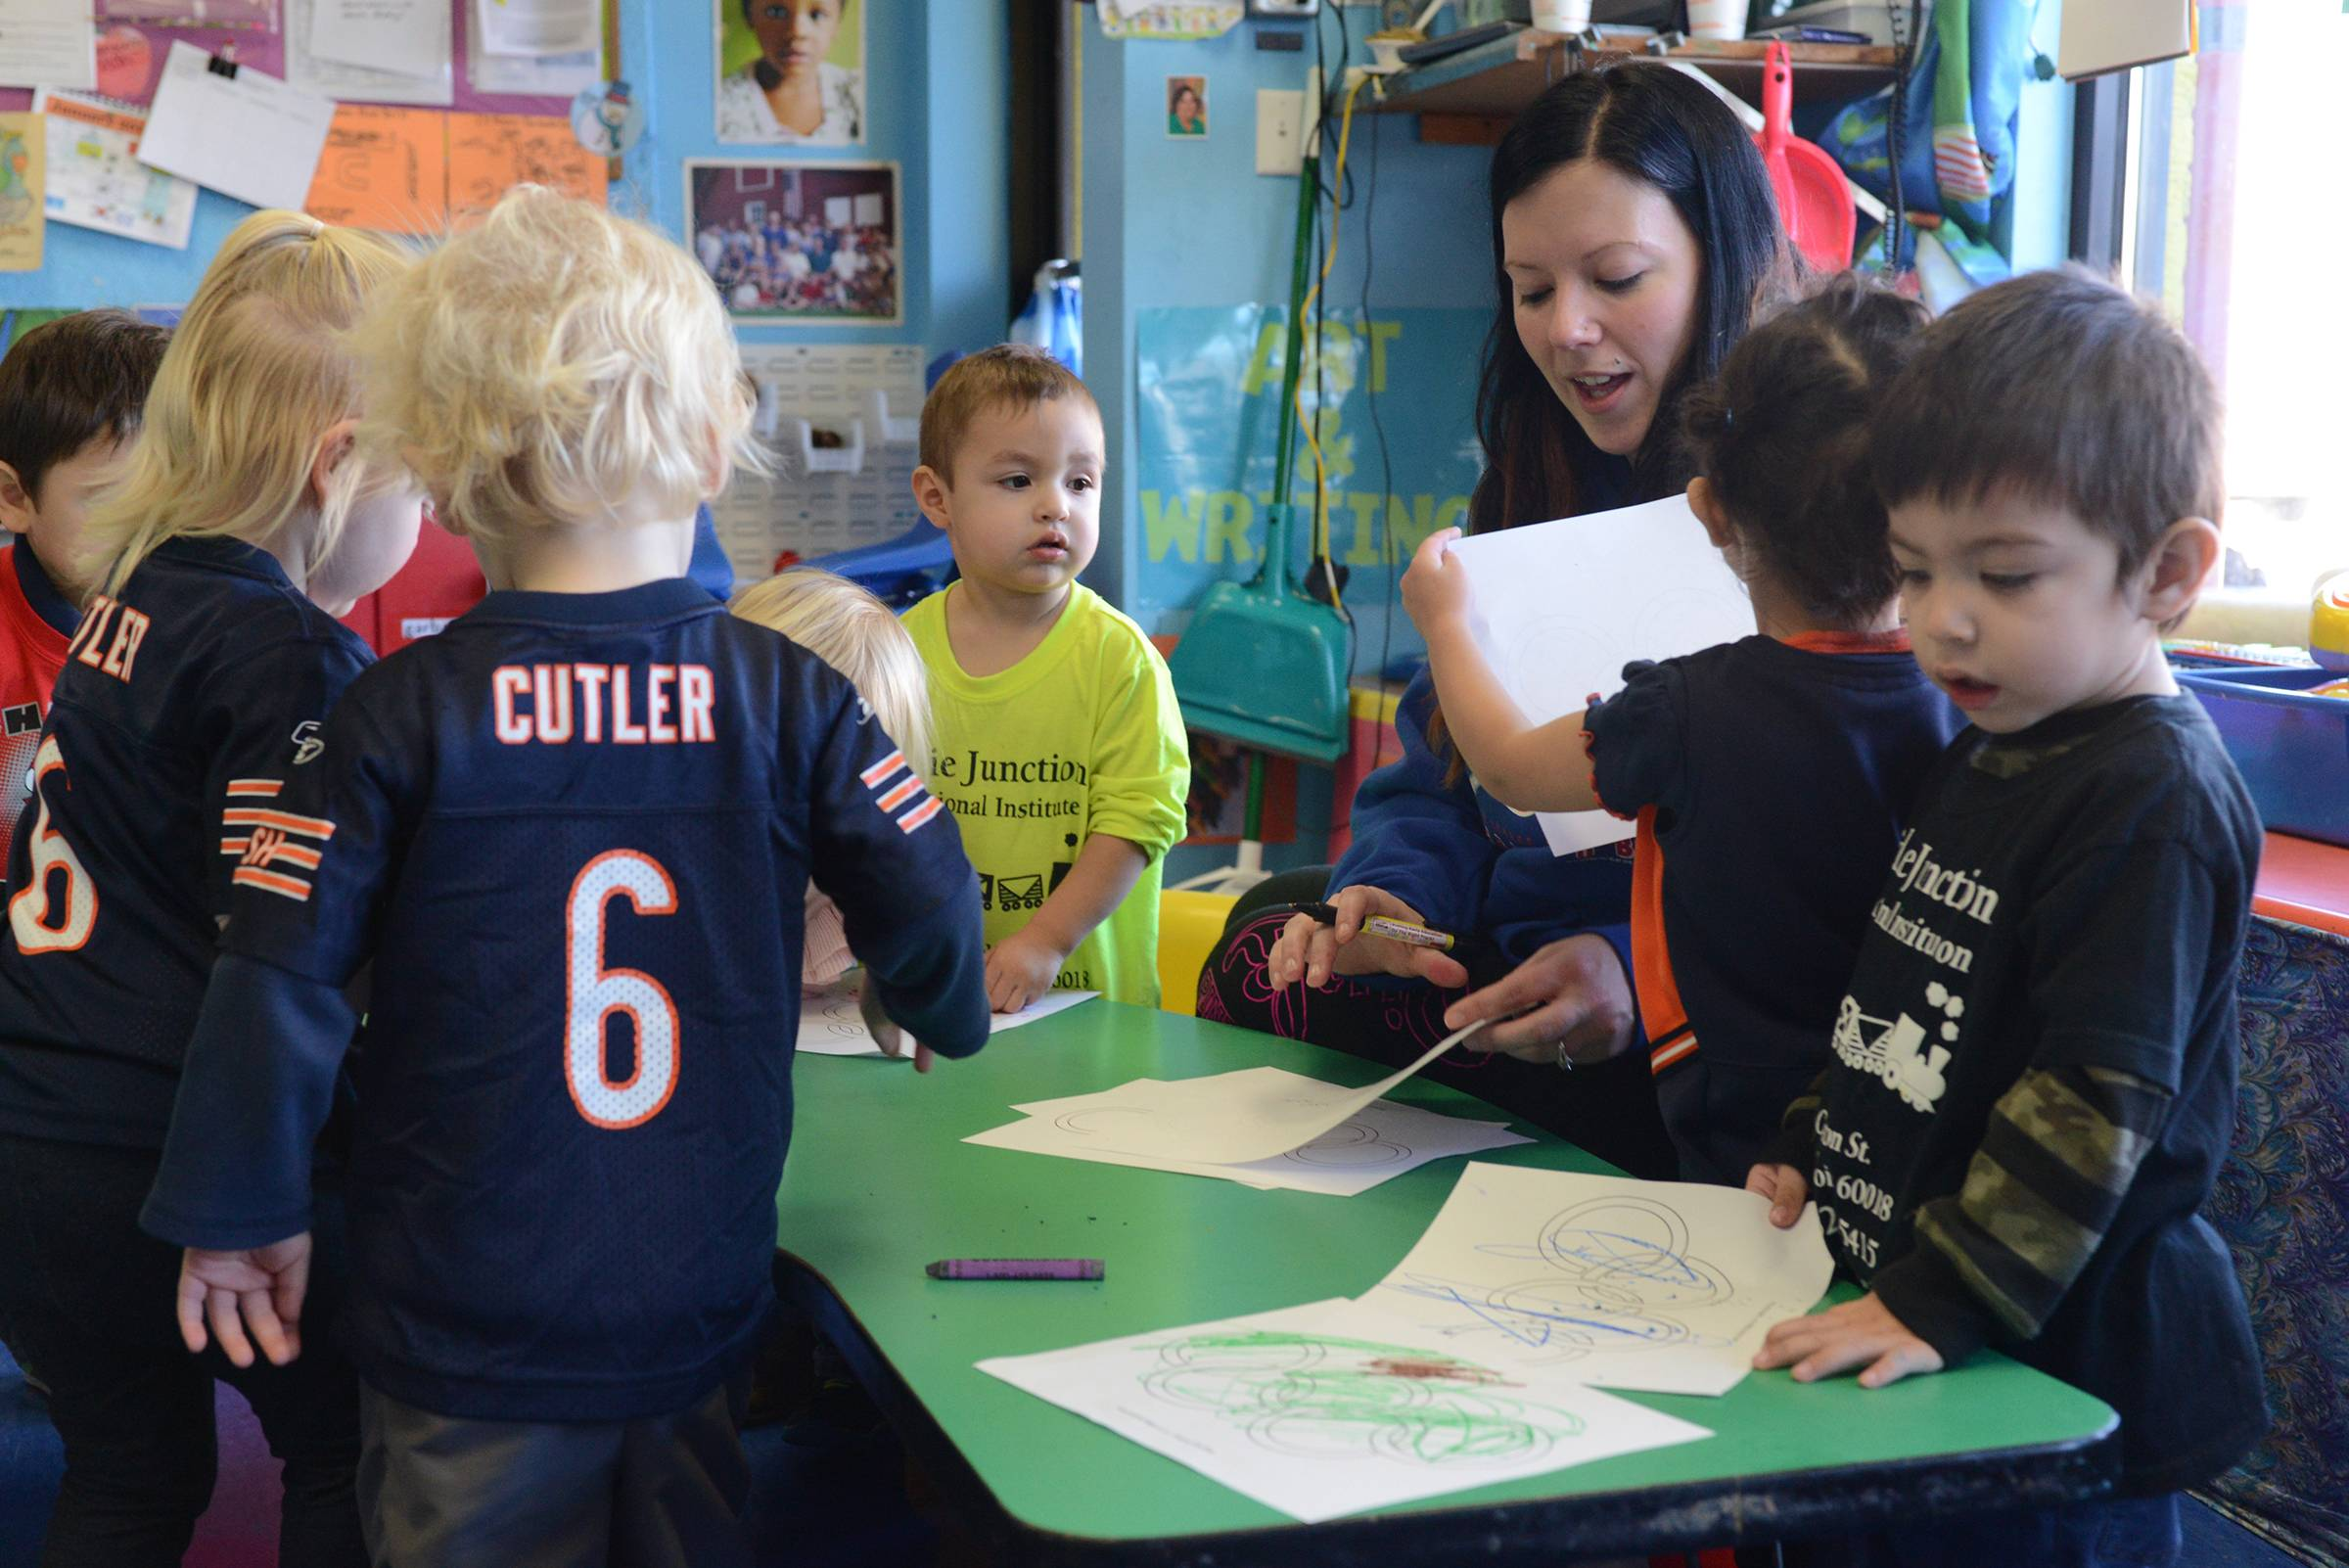 Kristen Lauretta of Niles works with 2-year-olds at Kiddie Junction Education Institute in Des Plaines on Friday. State subsidies for low-income families run out Monday, and many parents no longer will be able to afford day care.